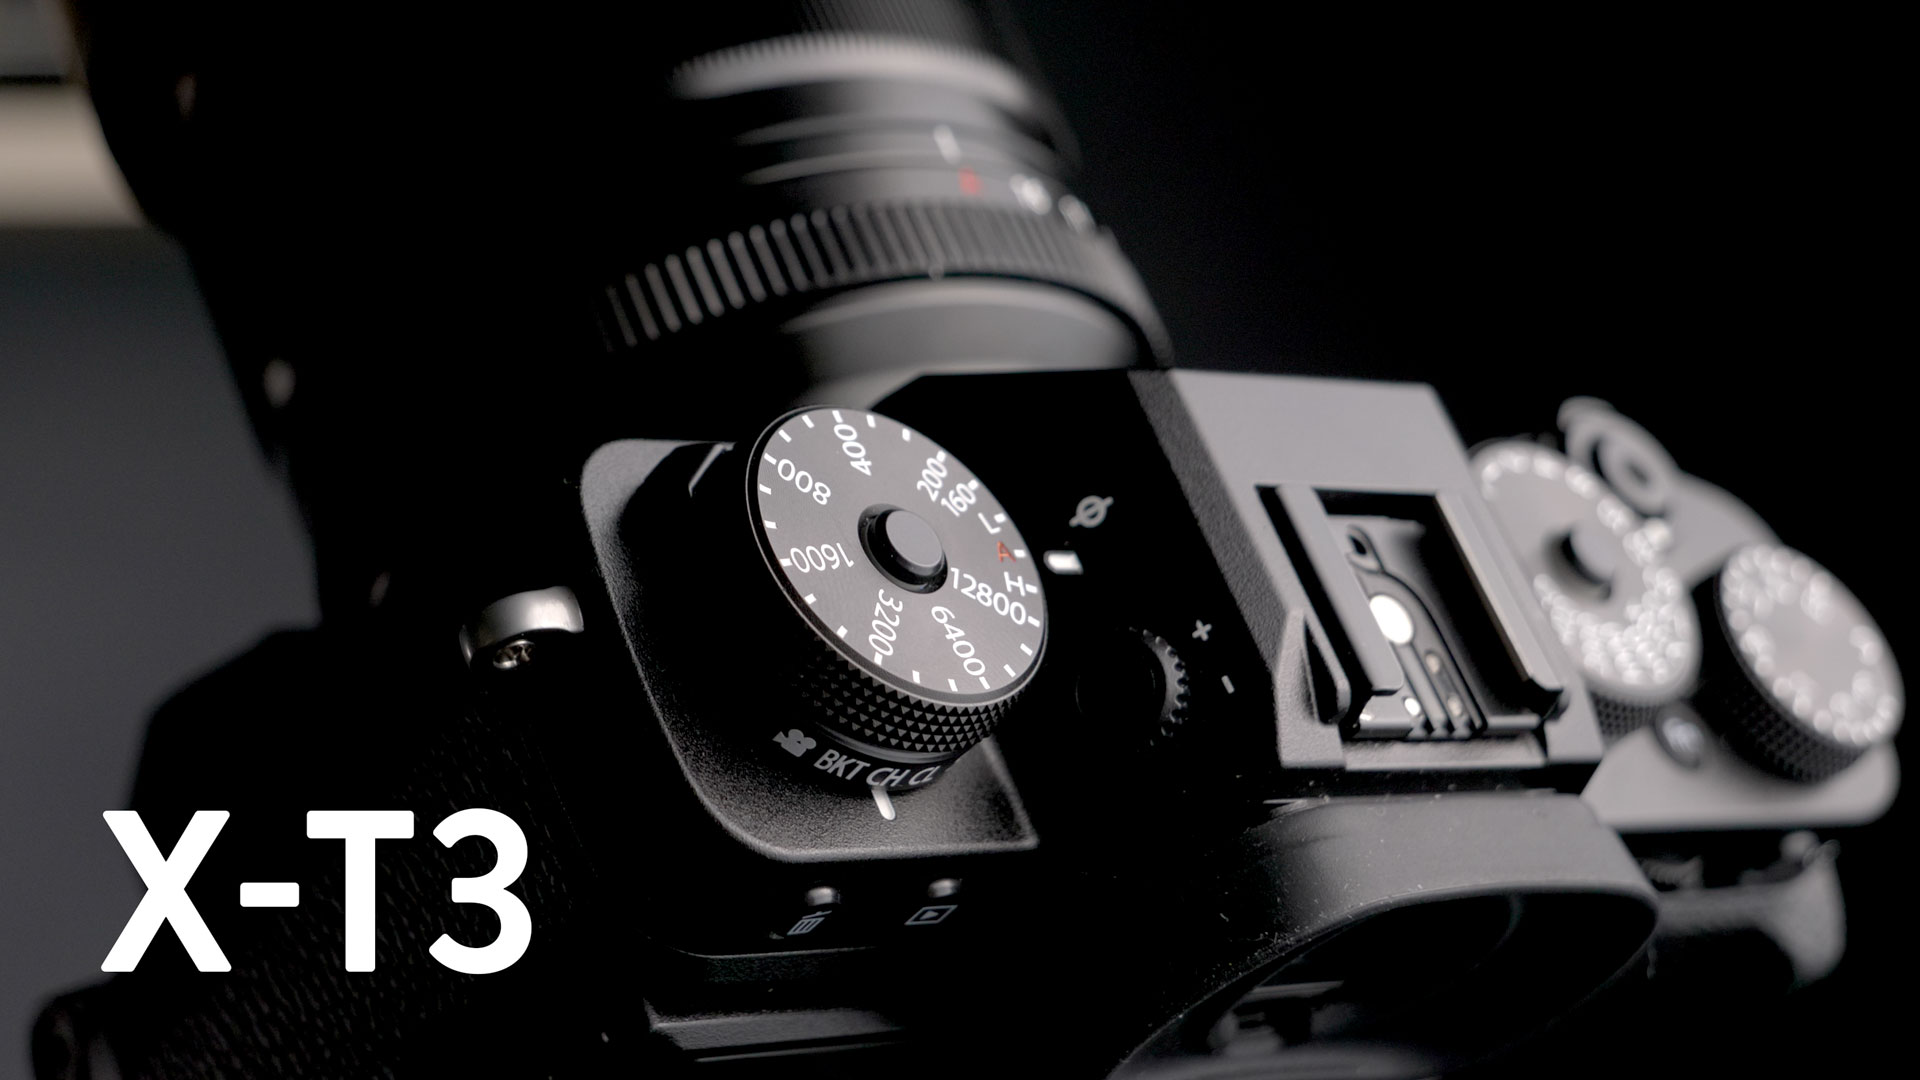 Fujifilm X-T3 :: Hands On Review